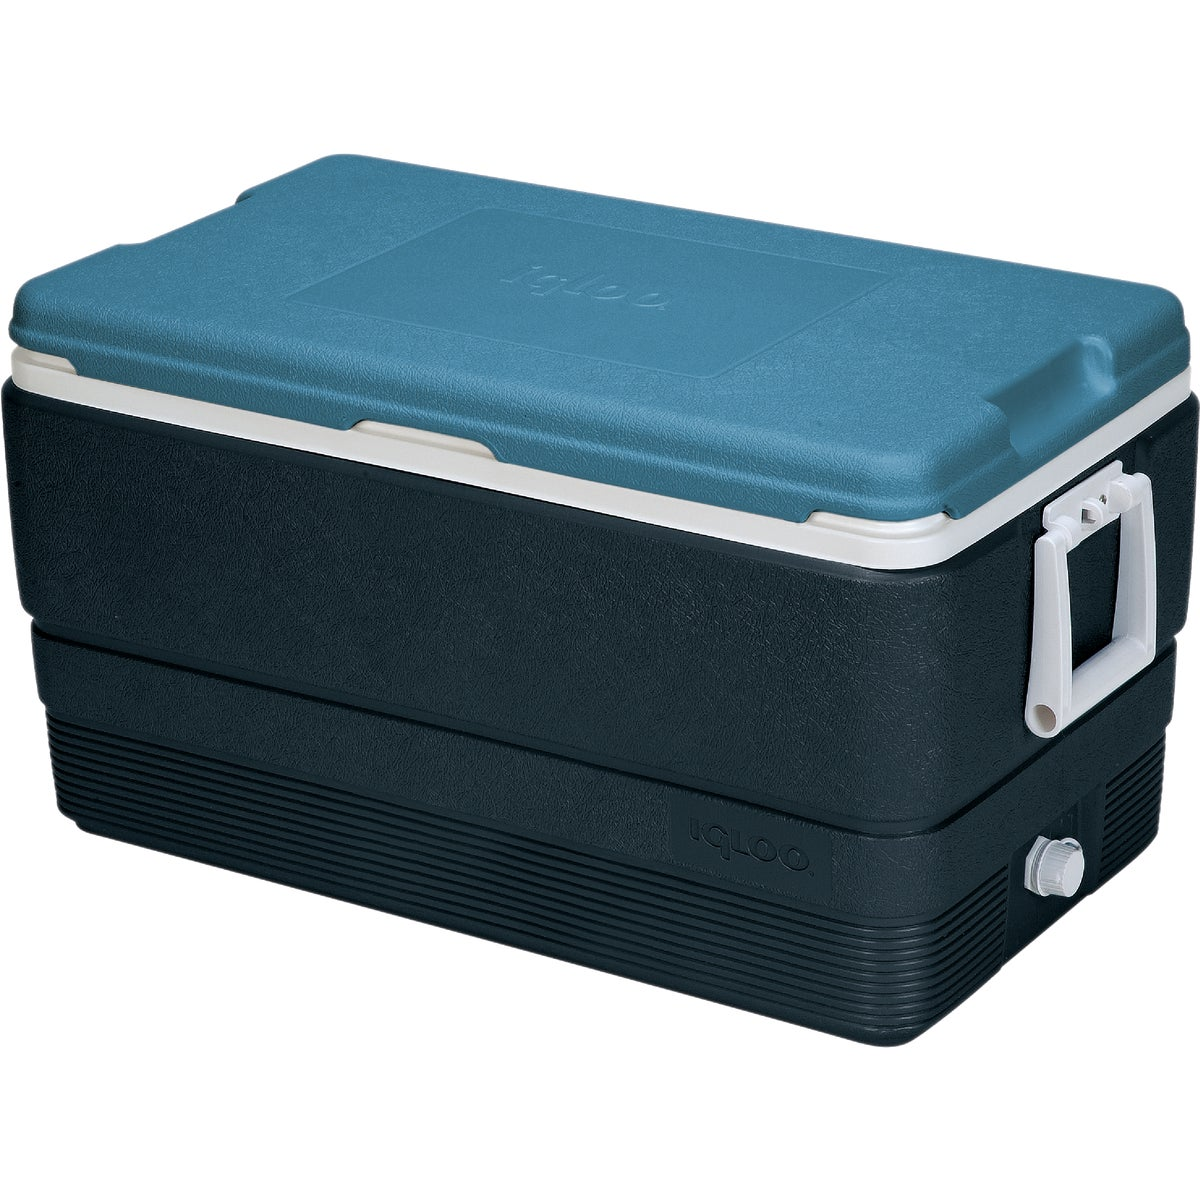 MAXCOLD 70QT COOLER - 44366 by Igloo Corp